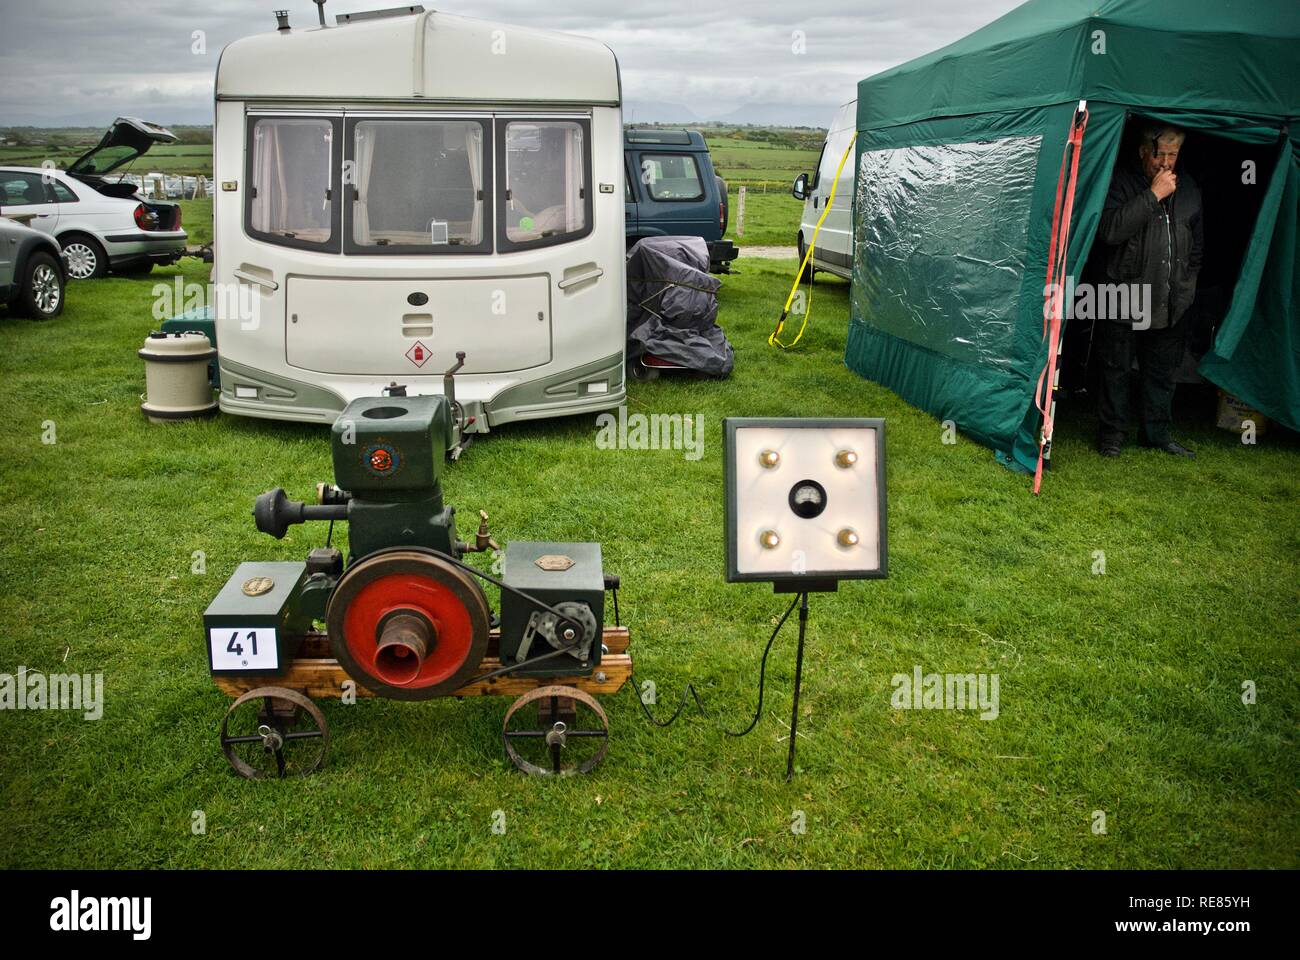 Ruston Hornsby generator at the Anglesey Vintage rally, Anglesey, North Wales, UK, May 2010 - Stock Image